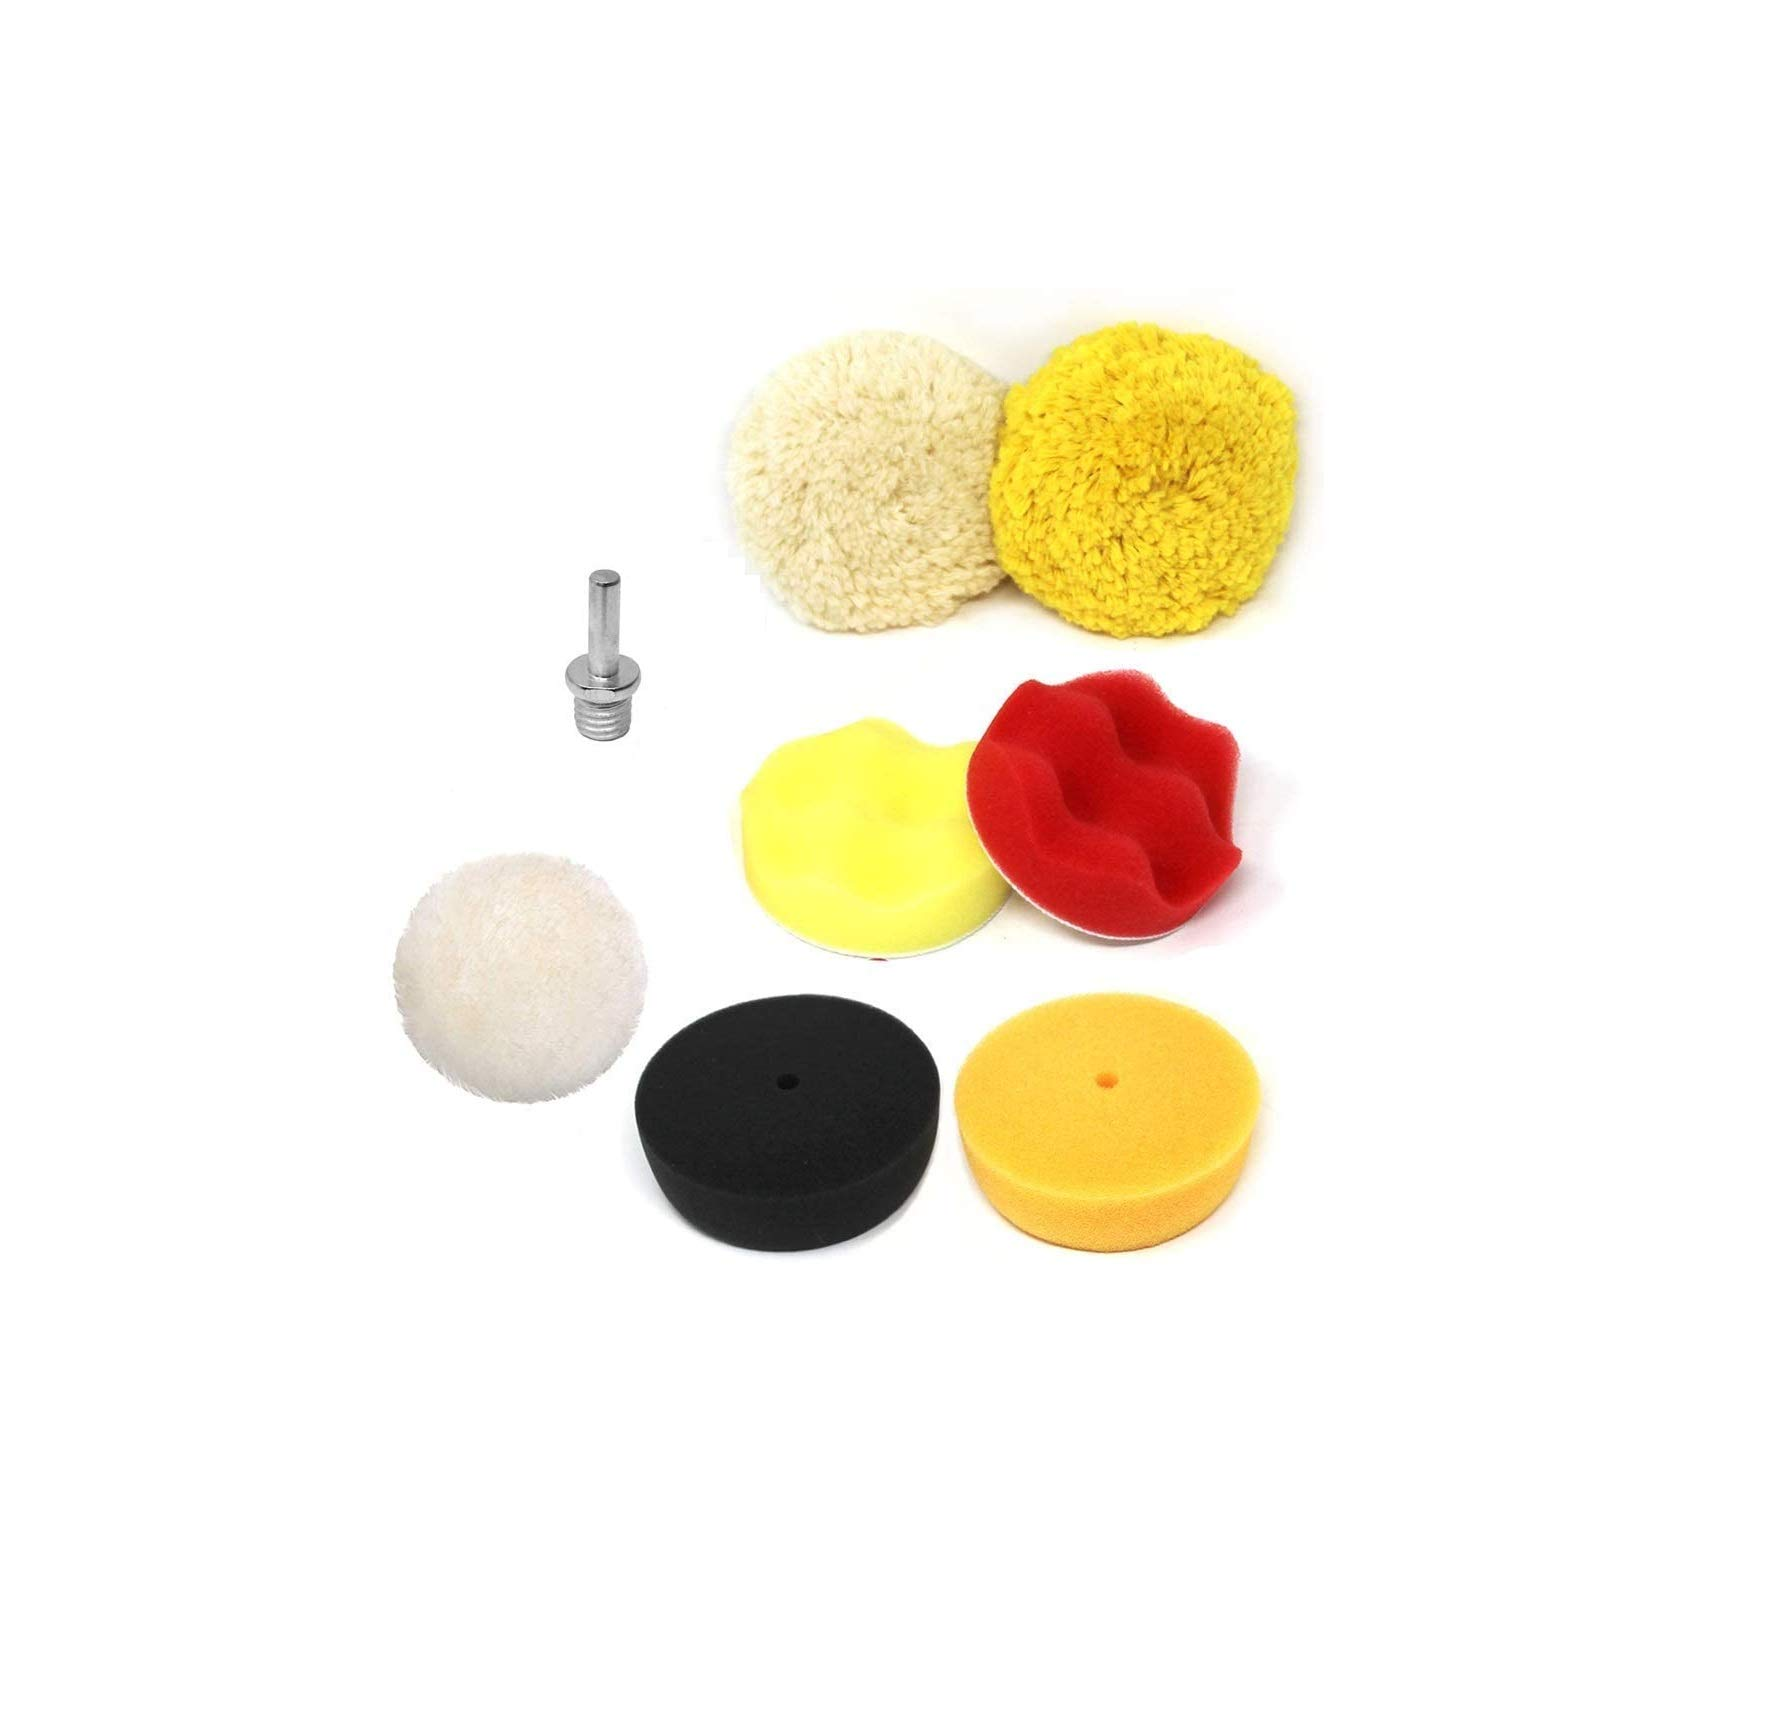 Toolman Drill Polishing Plate Sanding Buffing Sponge pad with 100% woolen wheel pad 3'' 8pcs PTH001A